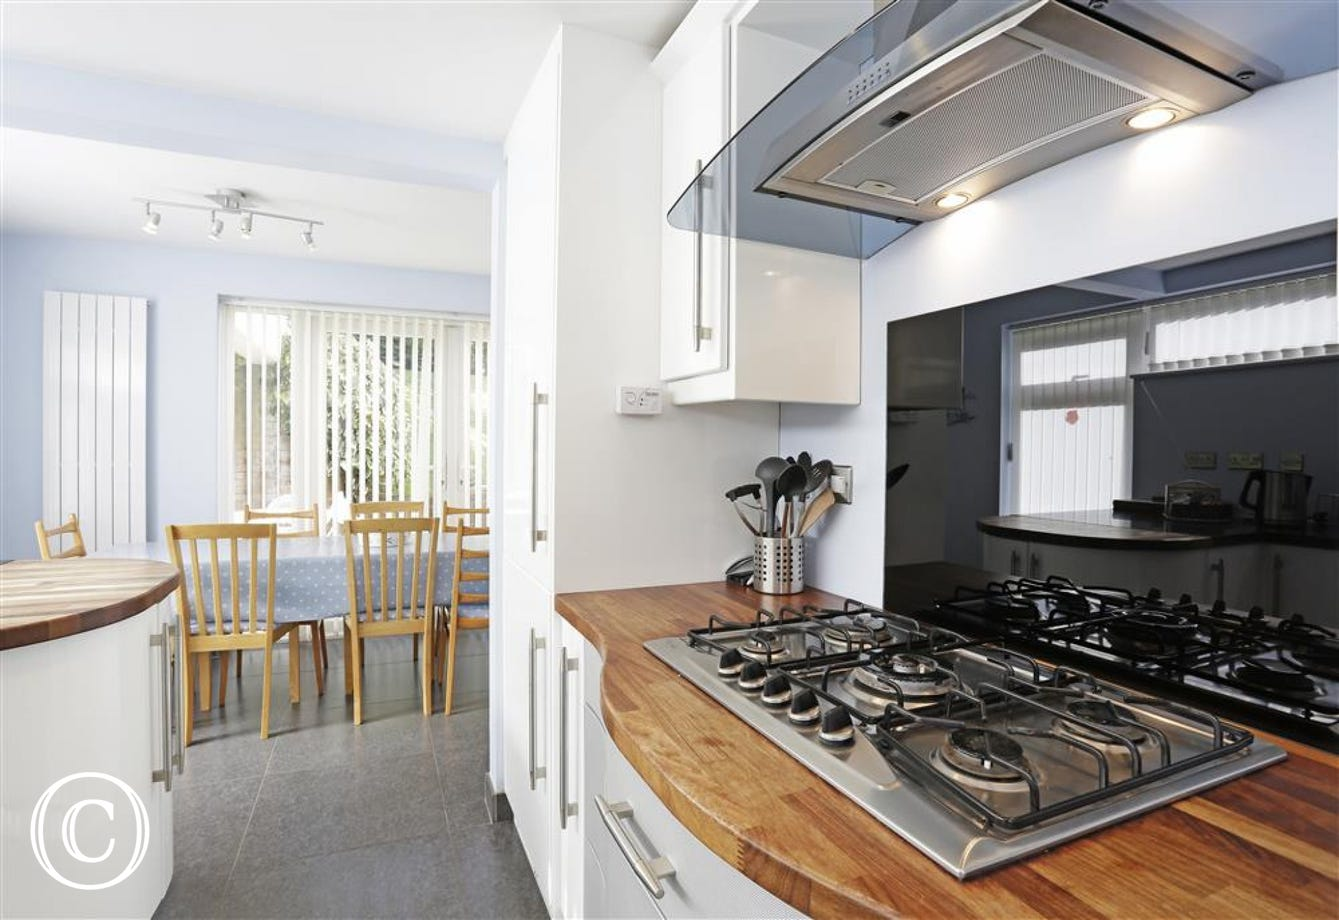 This modern kitchen area is located close to the dining area and has access to the garden for that alfresco dining.